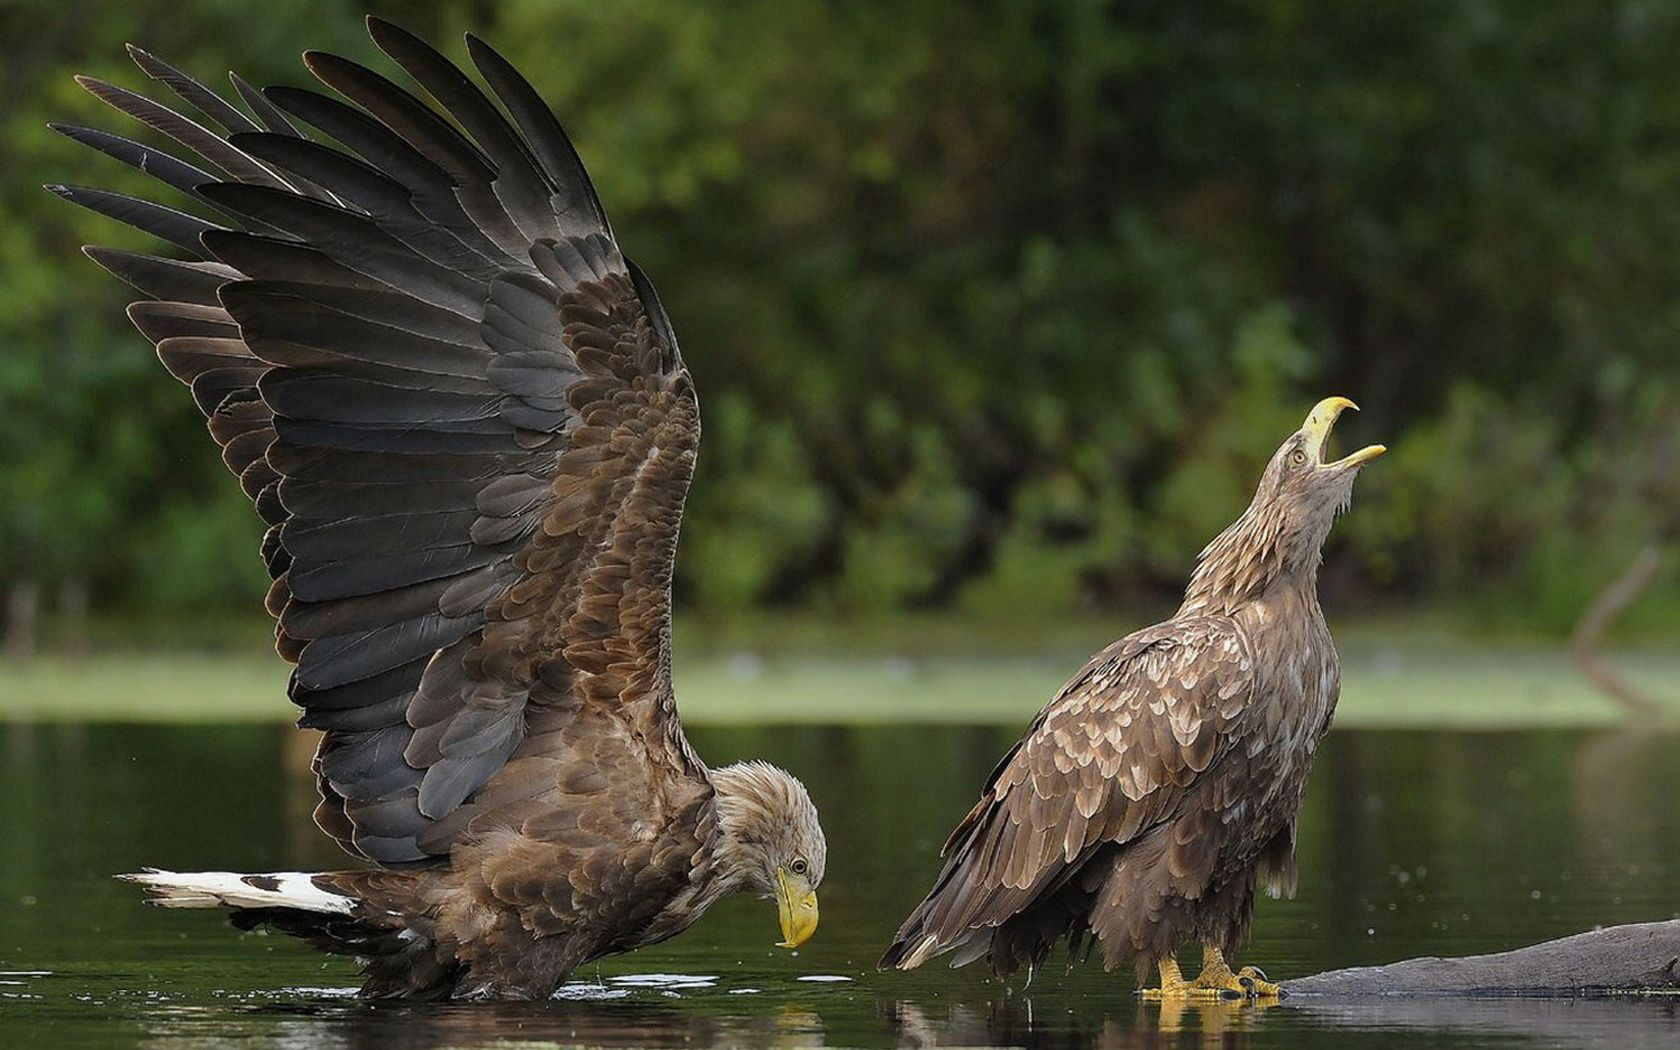 109116 download wallpaper Animals, Water, Couple, Pair, Predators, Birds, Eagles screensavers and pictures for free